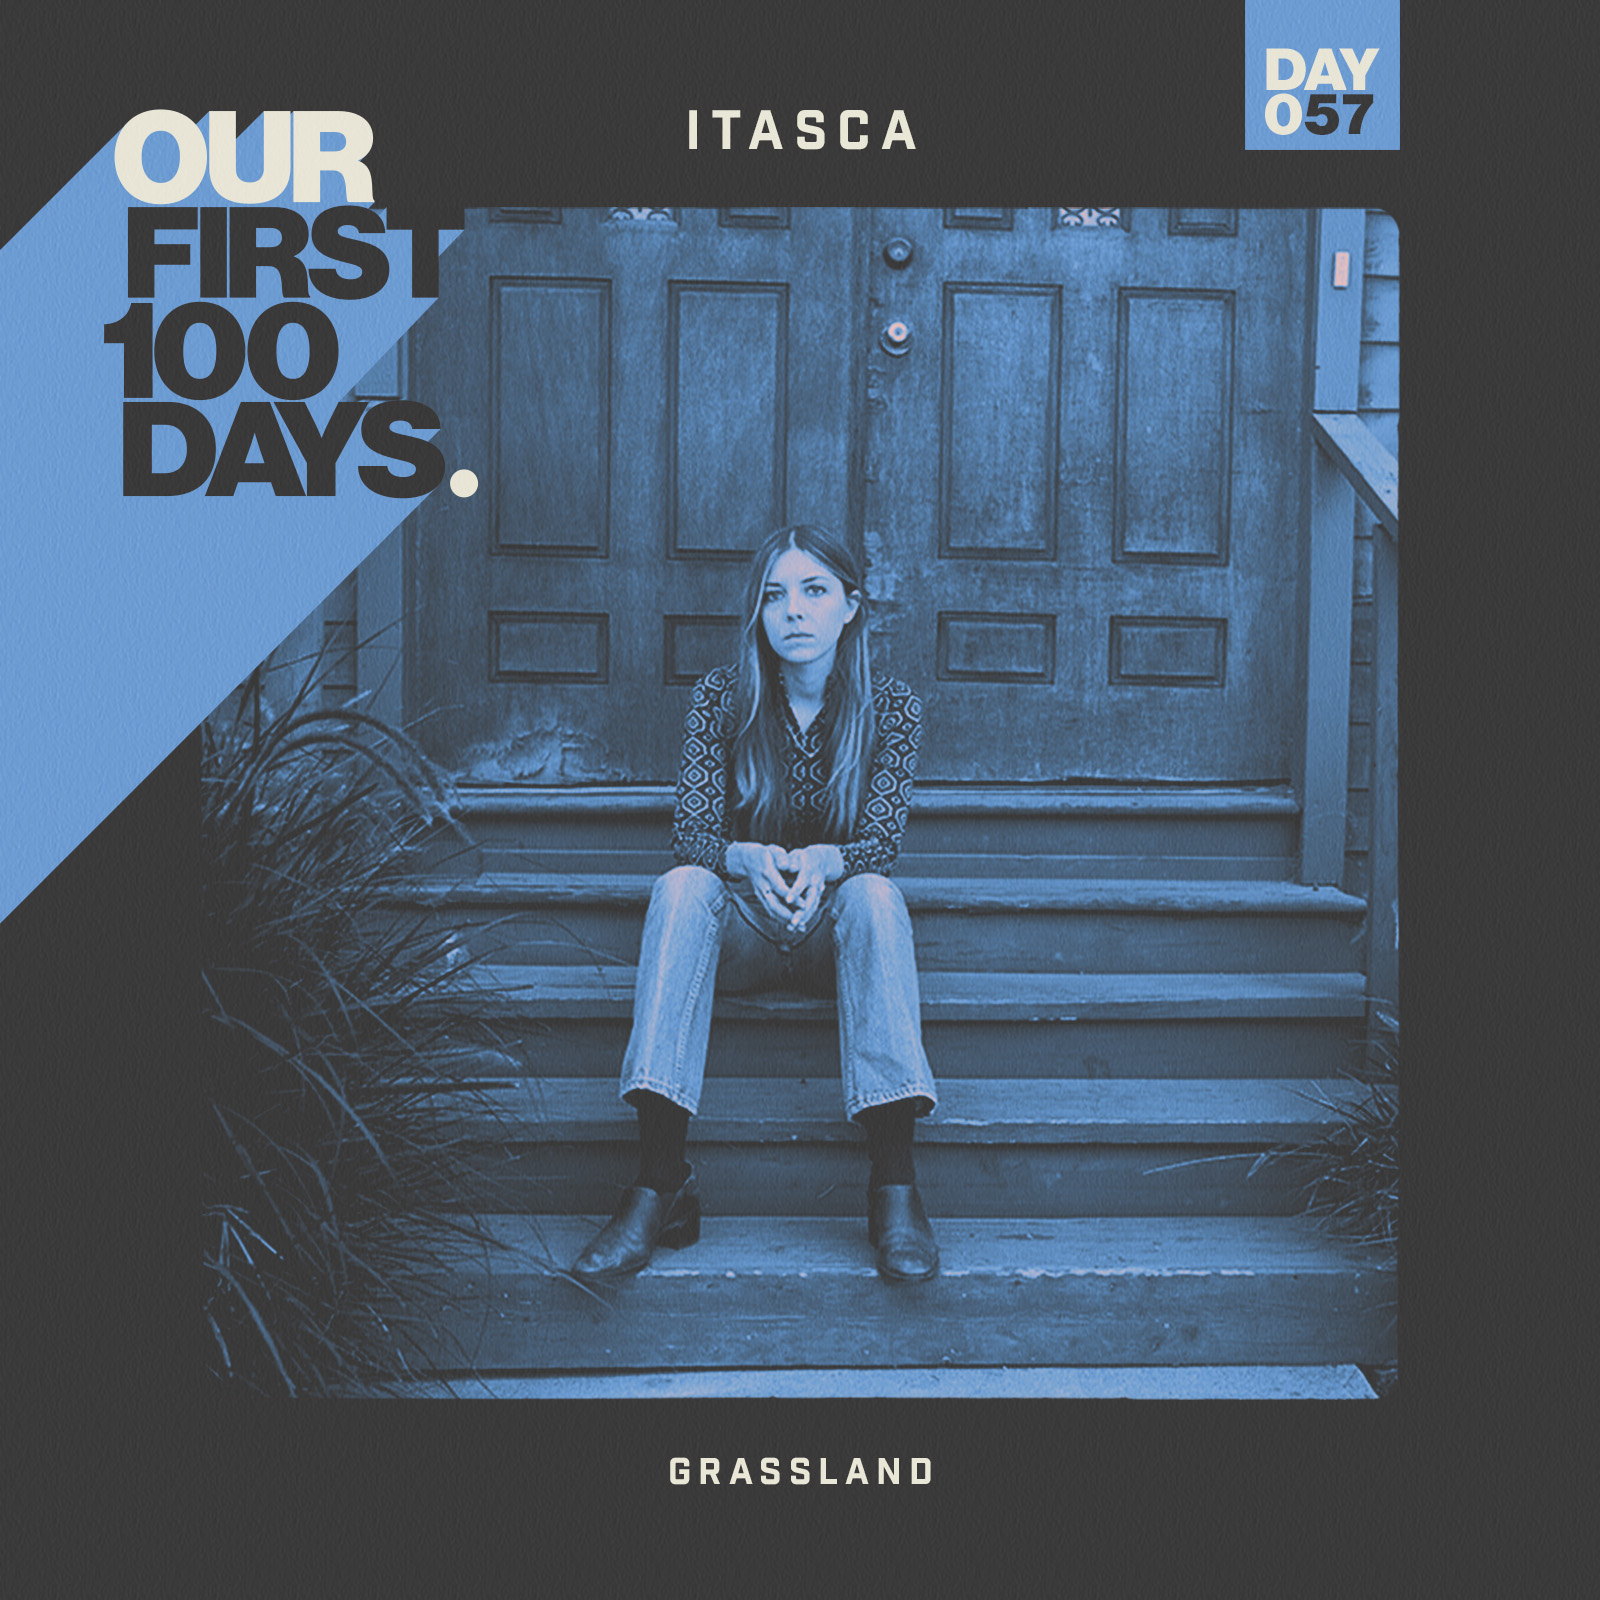 Itasca Premieres Grassland For Our First 100 Days Paradise Of 2004 Ford Ranger Cbc Fuse Diagram Friends And Distributors At The Secretly Group Are Assembling A Durational Track Compilation To Benefit Variety Worthy Organizations Involved